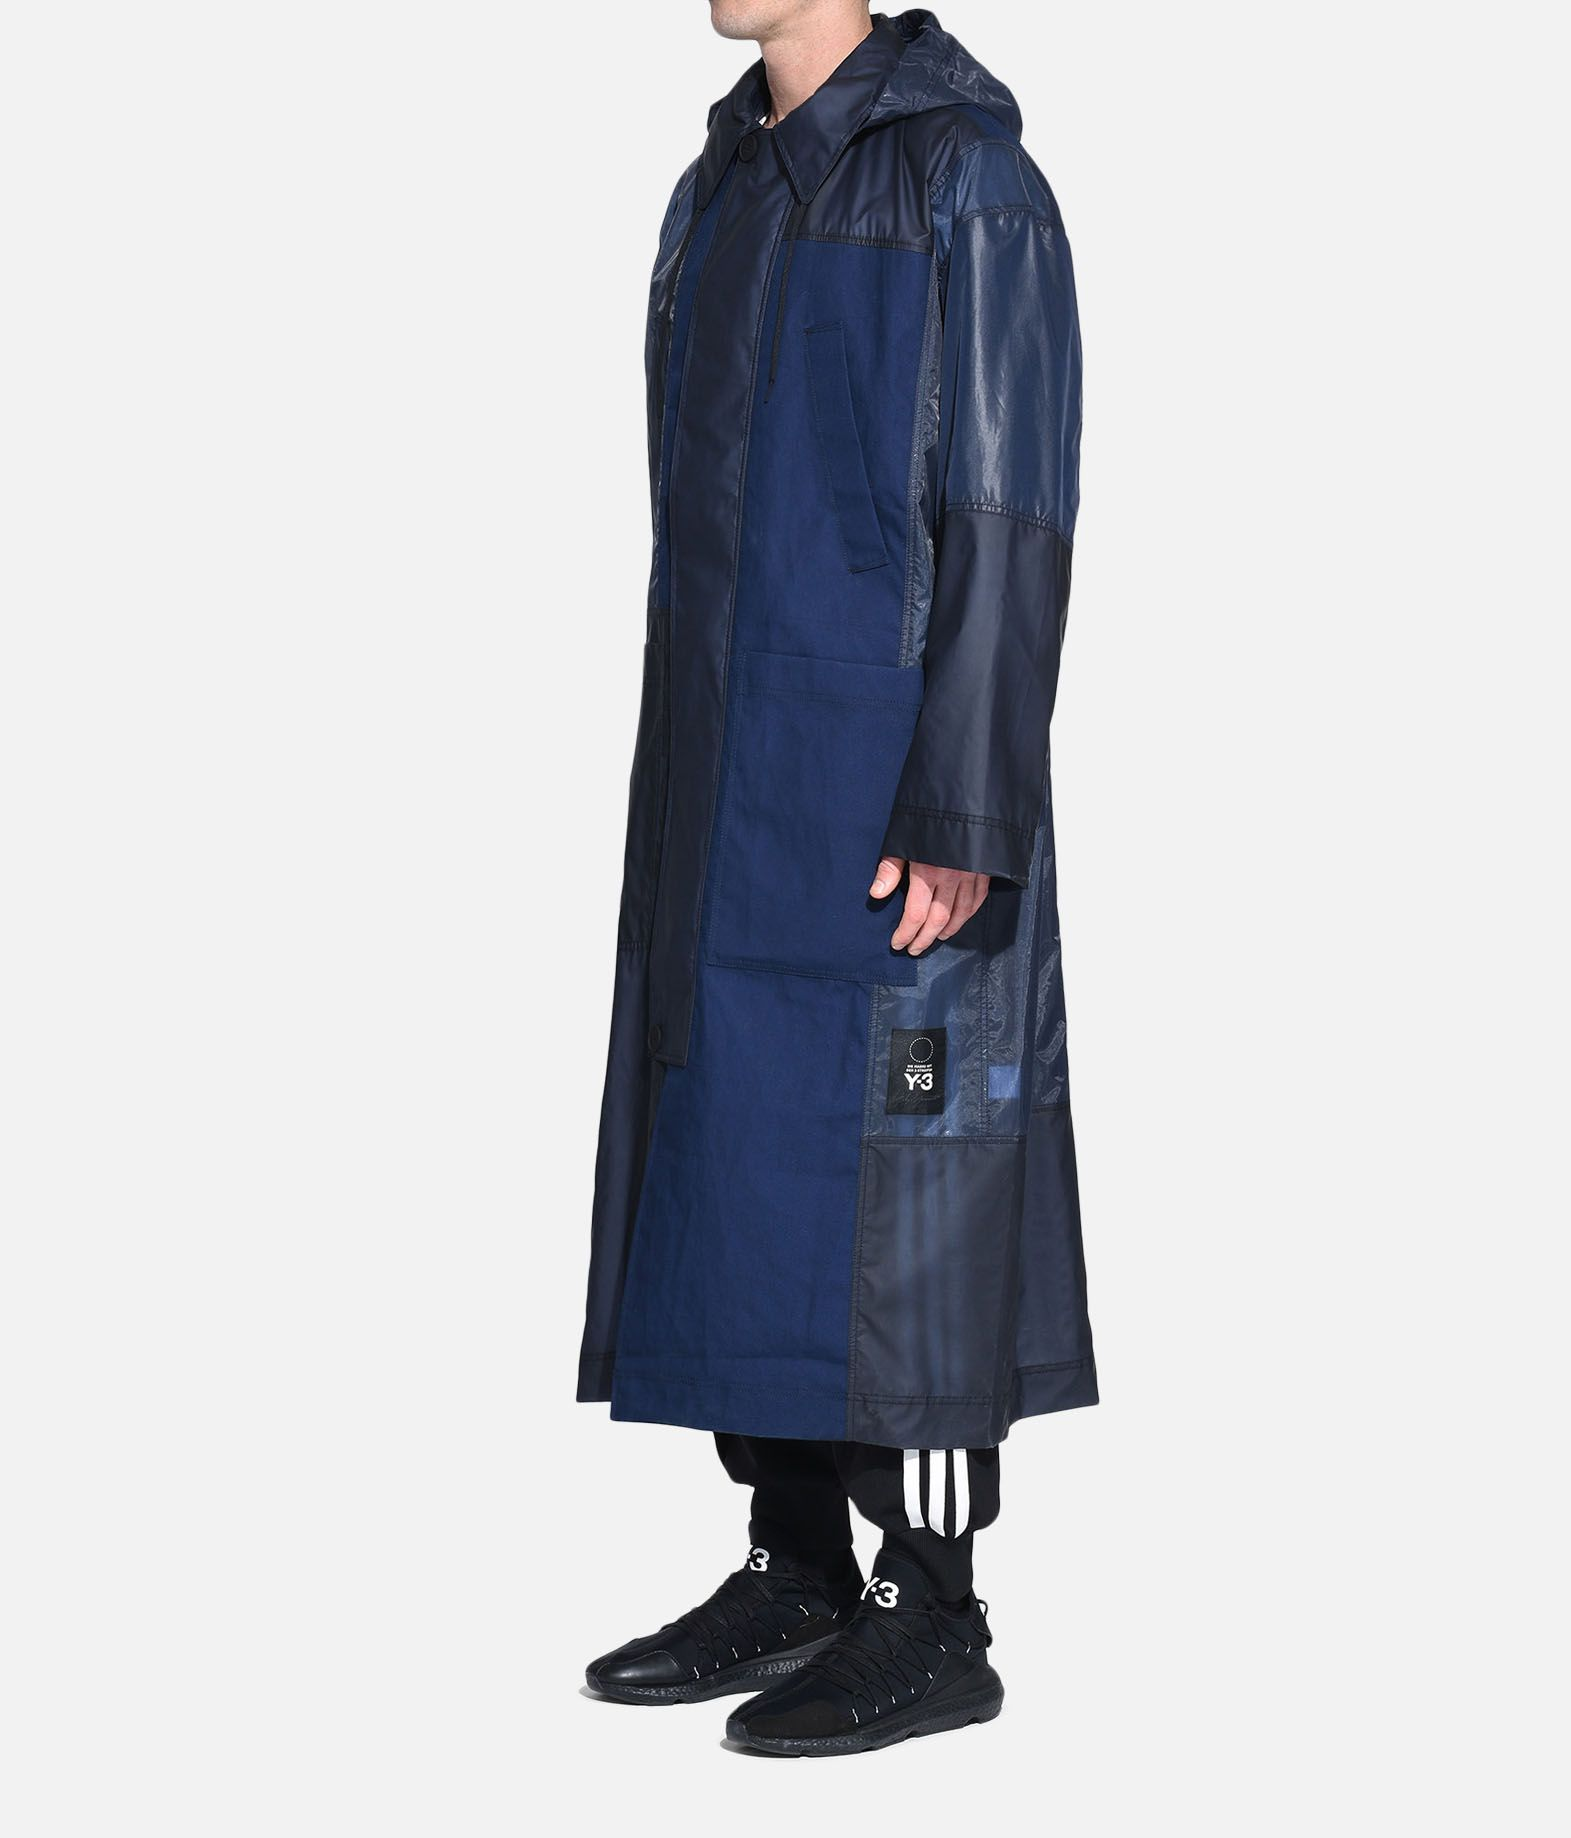 Y-3 Y-3 Patchwork Long Coat Coat Man e